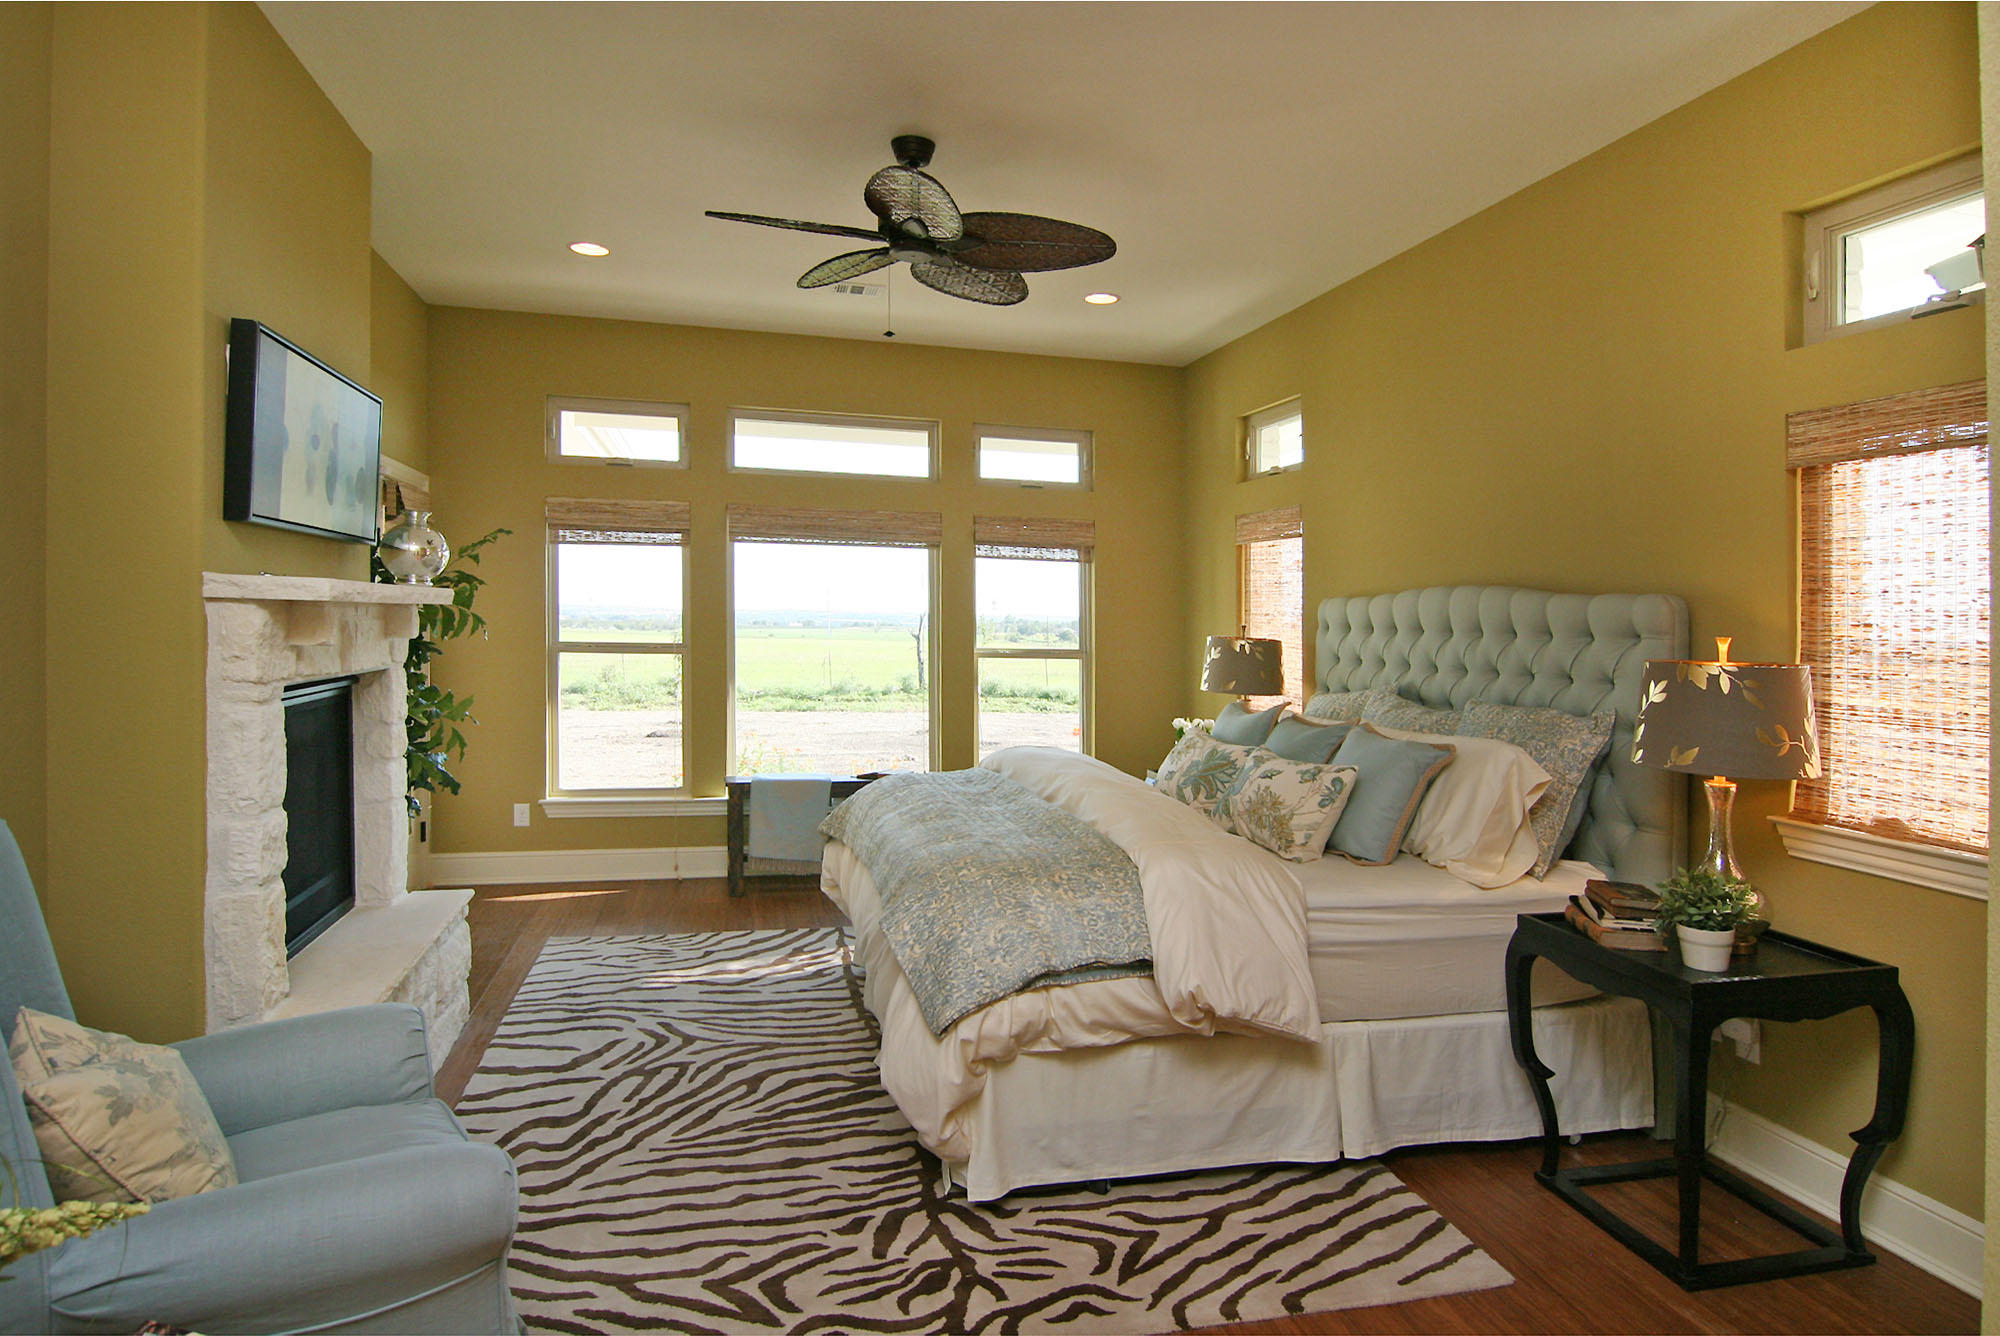 Homes for sale at Blackhawk golf course in Pflugerville